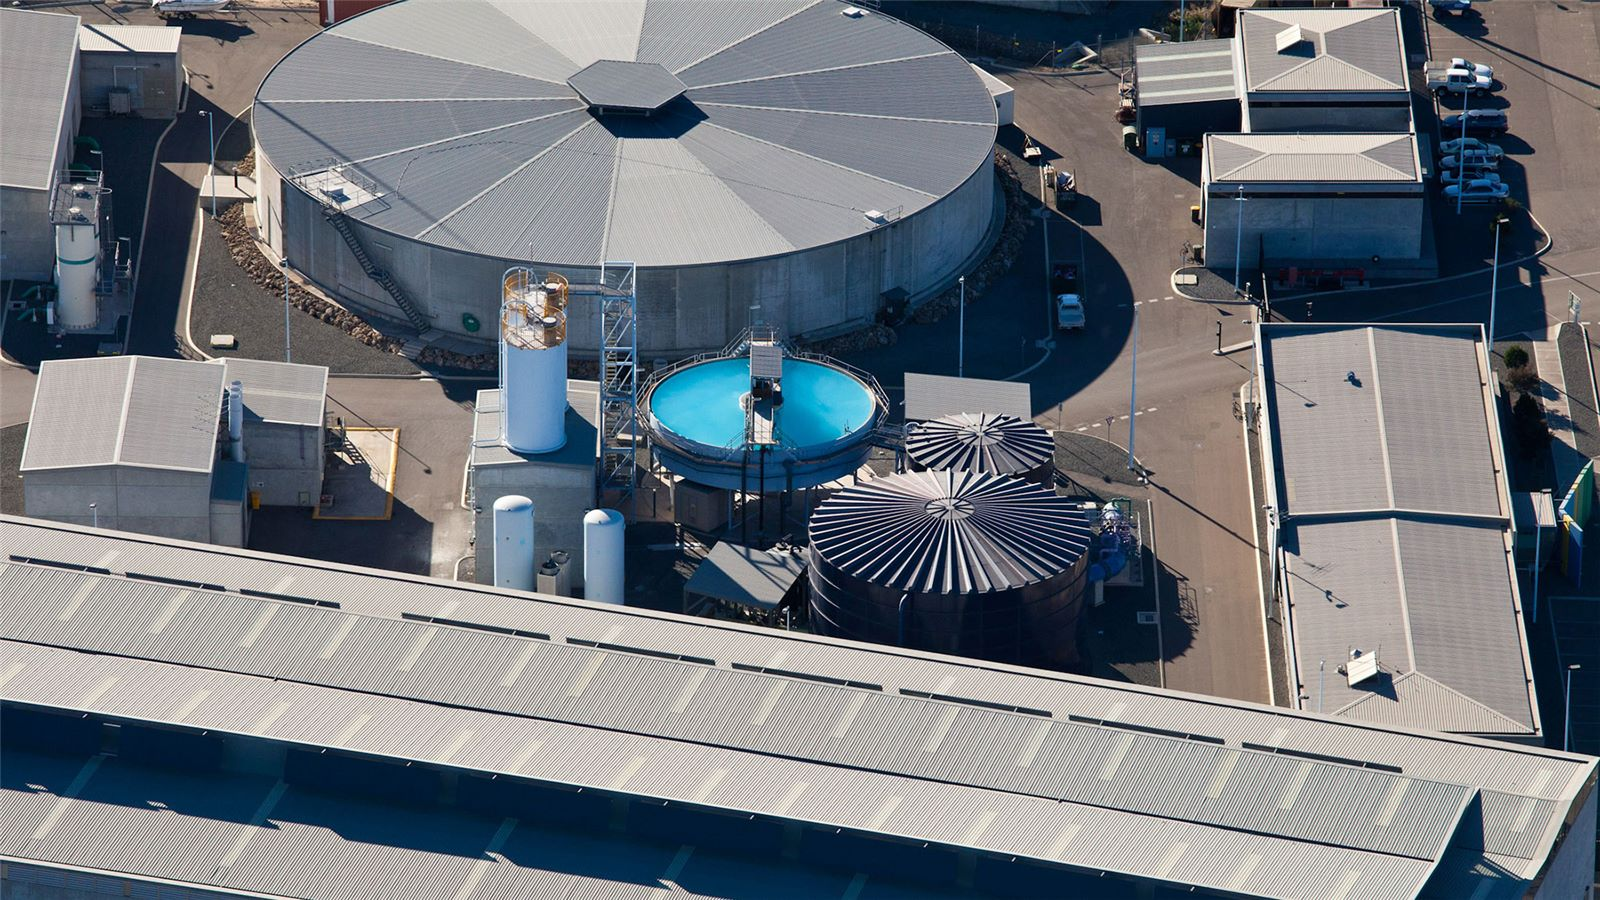 Perth drinking water sypply from seawater desalination